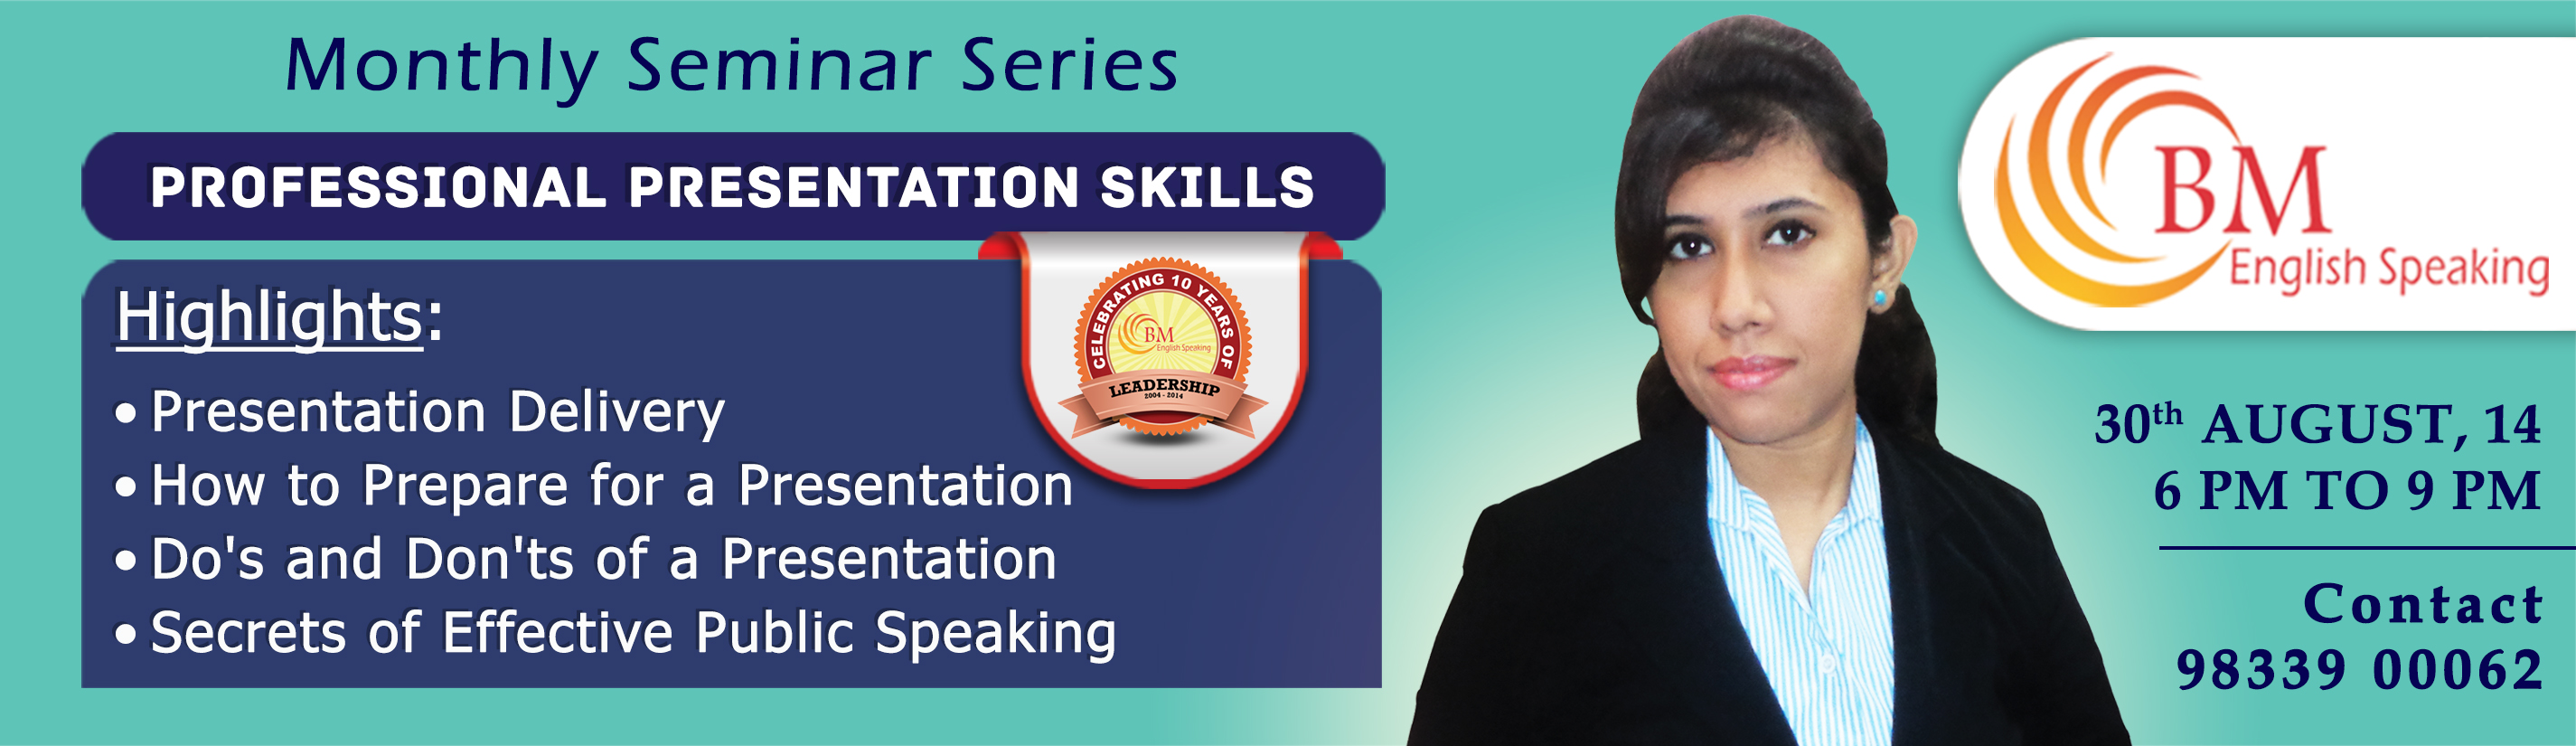 BM English presents Professional Presentation Seminar. How to Prepare for a Presentation, Dos  Donts of a Presentation, Secrets of Public Speaking.